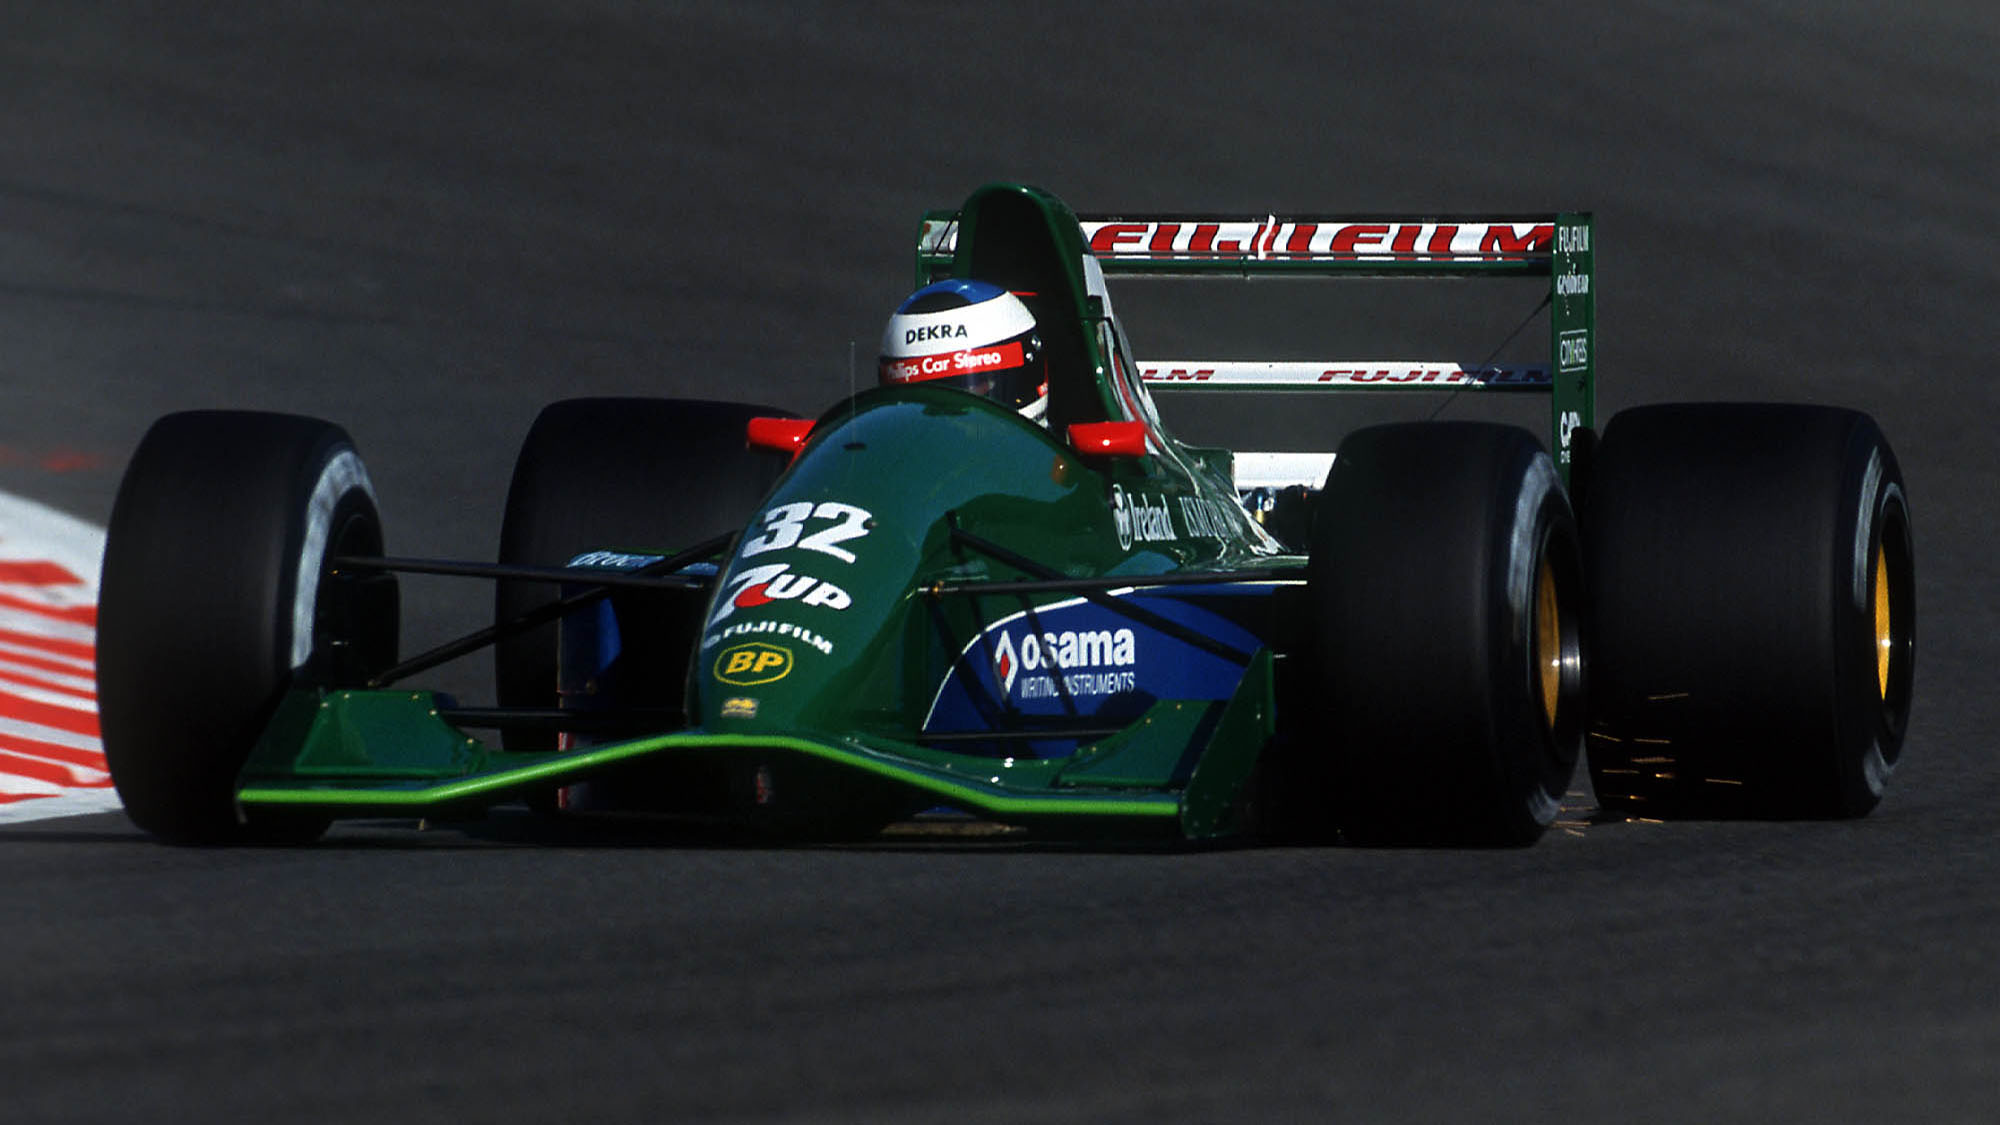 AUTO - F1 1991 - BELGIUM - SPA FRANCORCHAMPS - PHOTO: ERIC VARGIOLU / DPPI MICHAEL SCHUMACHER (GER) / JORDAN FORD - FIRST GP ACTION Reference: 00000520_005